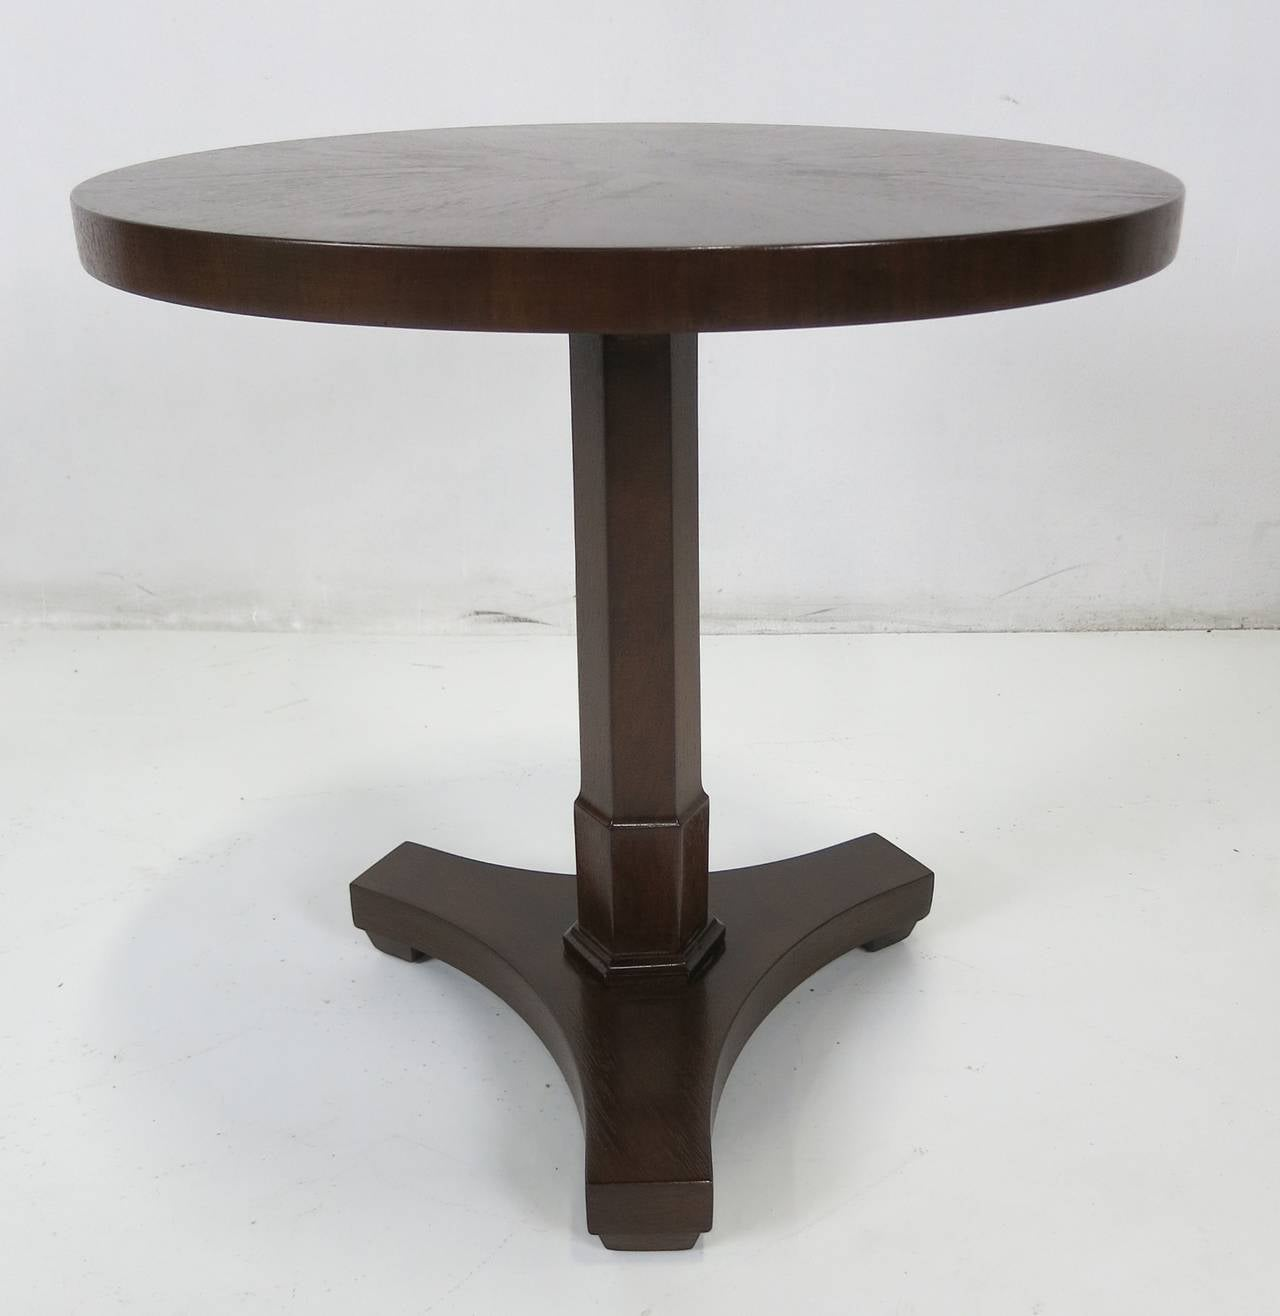 Walnut gueridon side table with sunburst veneer top at 1stdibs for Table gueridon